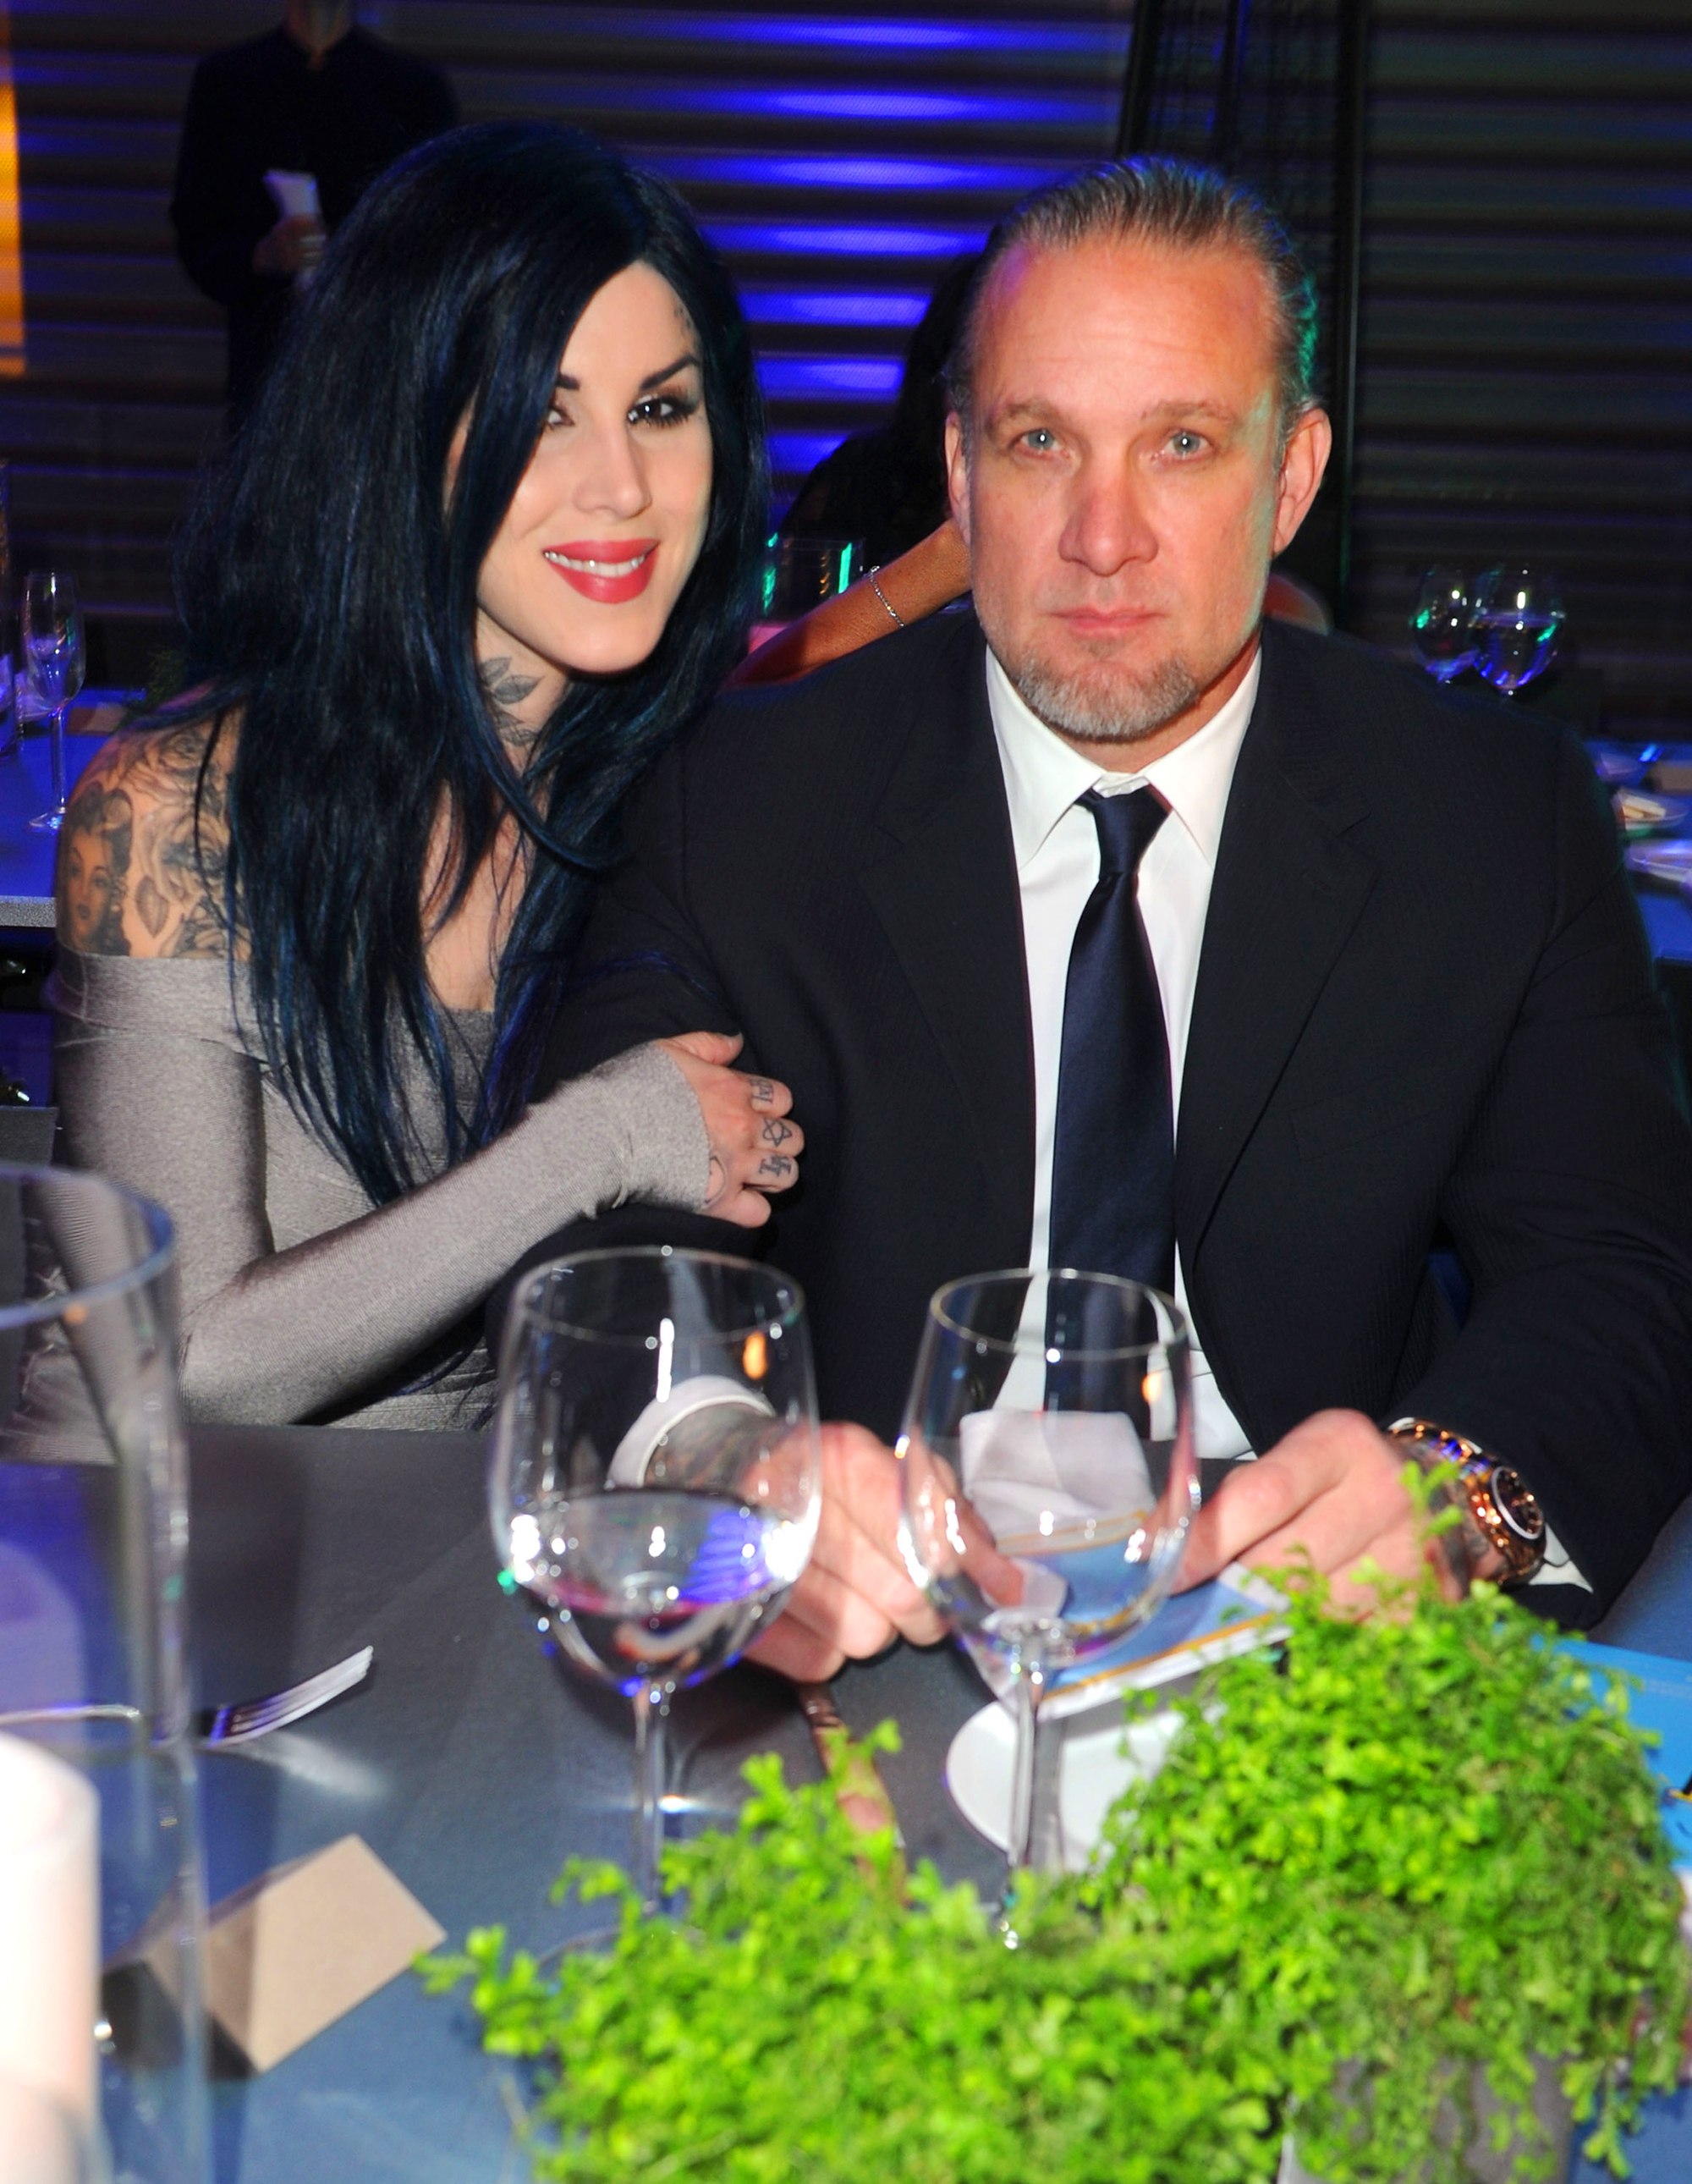 """hot rebound romances - The L.A Ink star and James made their new romance public in September, a couple months after his divorce from Sandra Bullock (whom he cheated on) was finalized. """"It definitely wasn't planned,"""" she told Us of their relationship."""